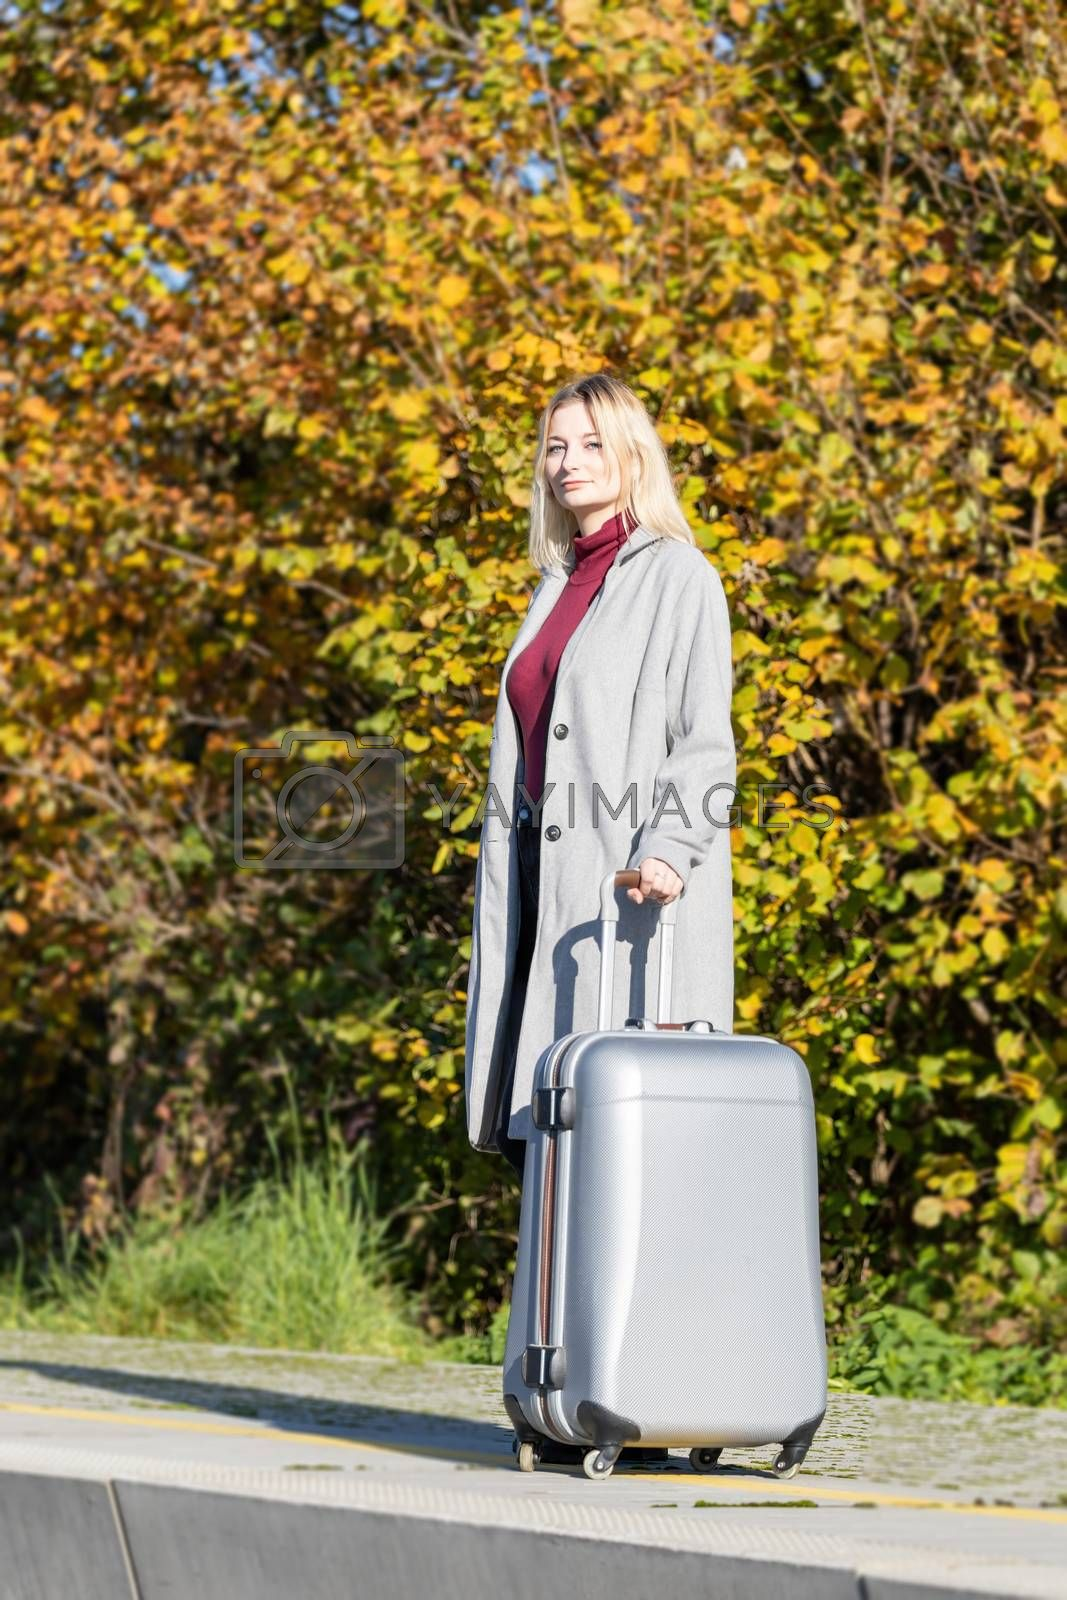 Young blond girl is posing with suitcase in the railway station looking at the camera in the sunny autumn day.